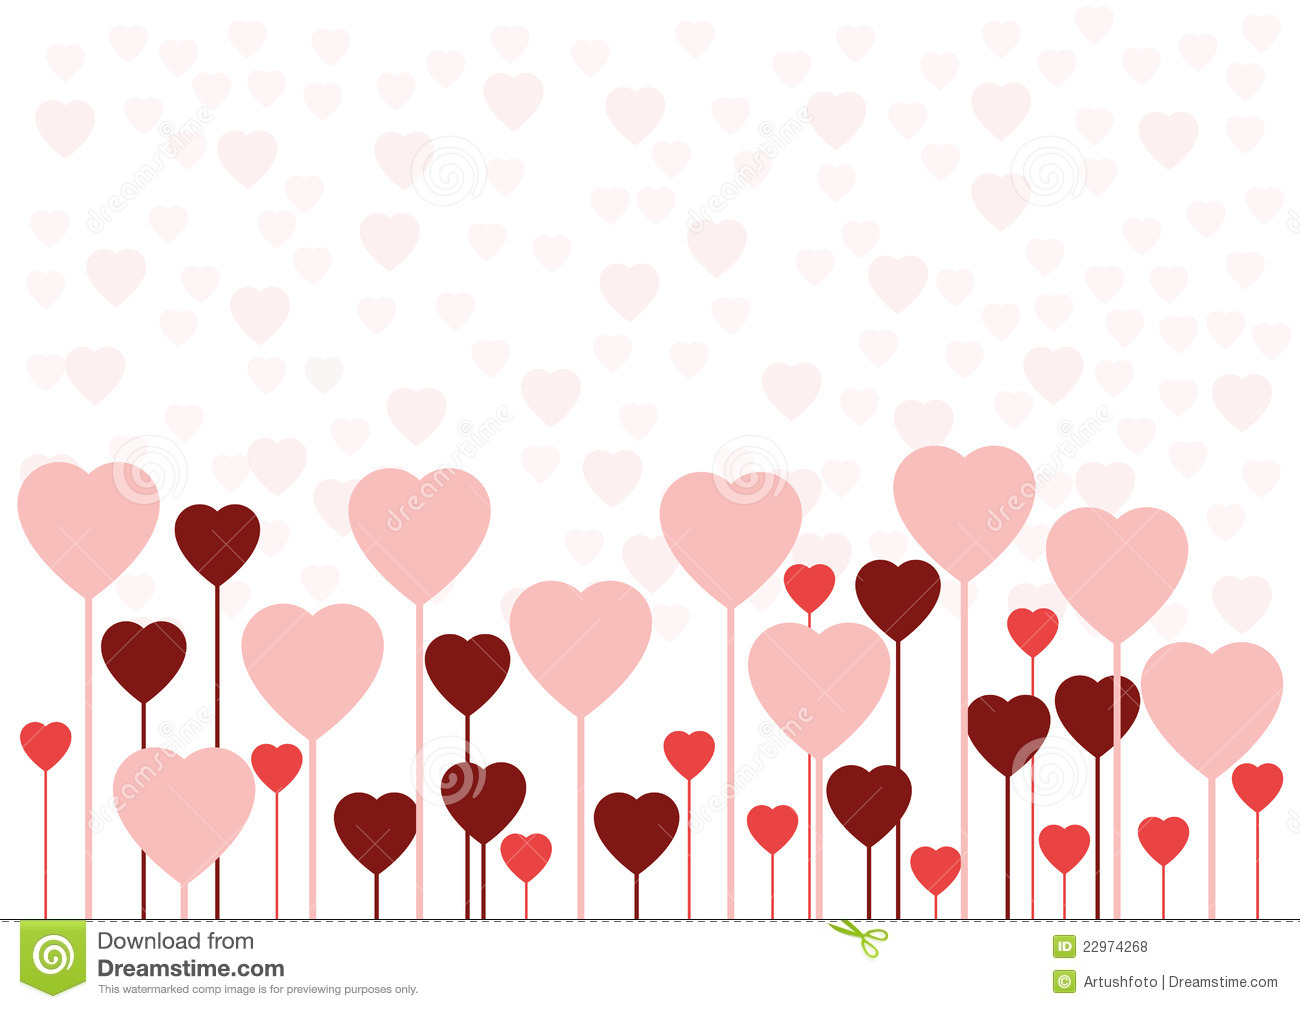 Valentine Love card Or Background Royalty Free Stock Photos - Image: 22974268